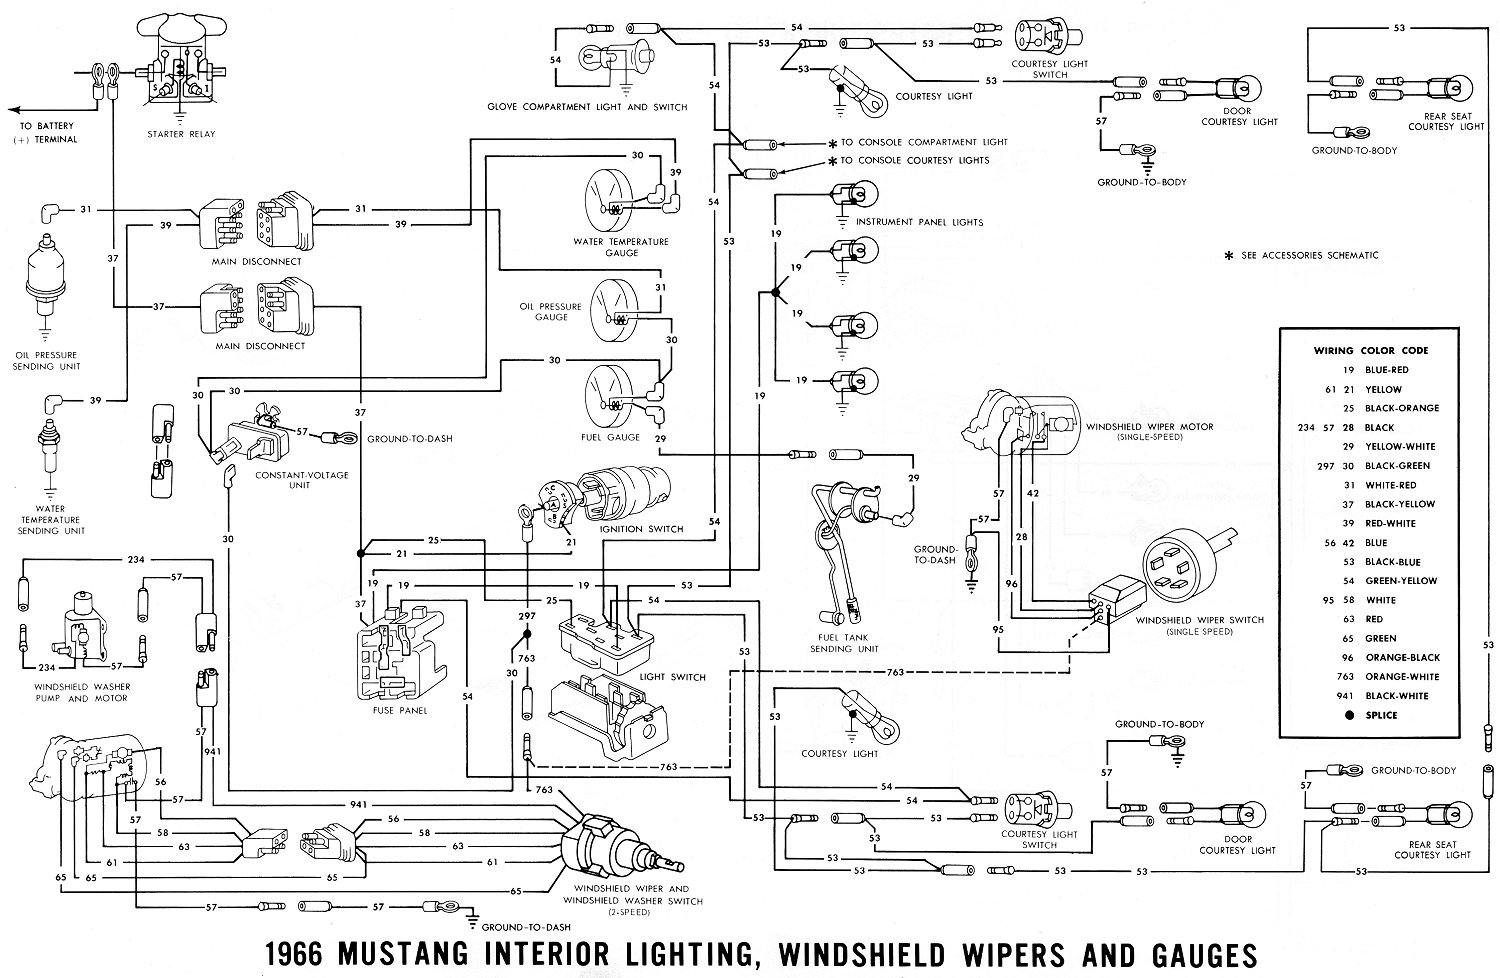 1966 mustang wiring diagrams average joe restoration  1966 ford mustang coupe wiring diagram #1